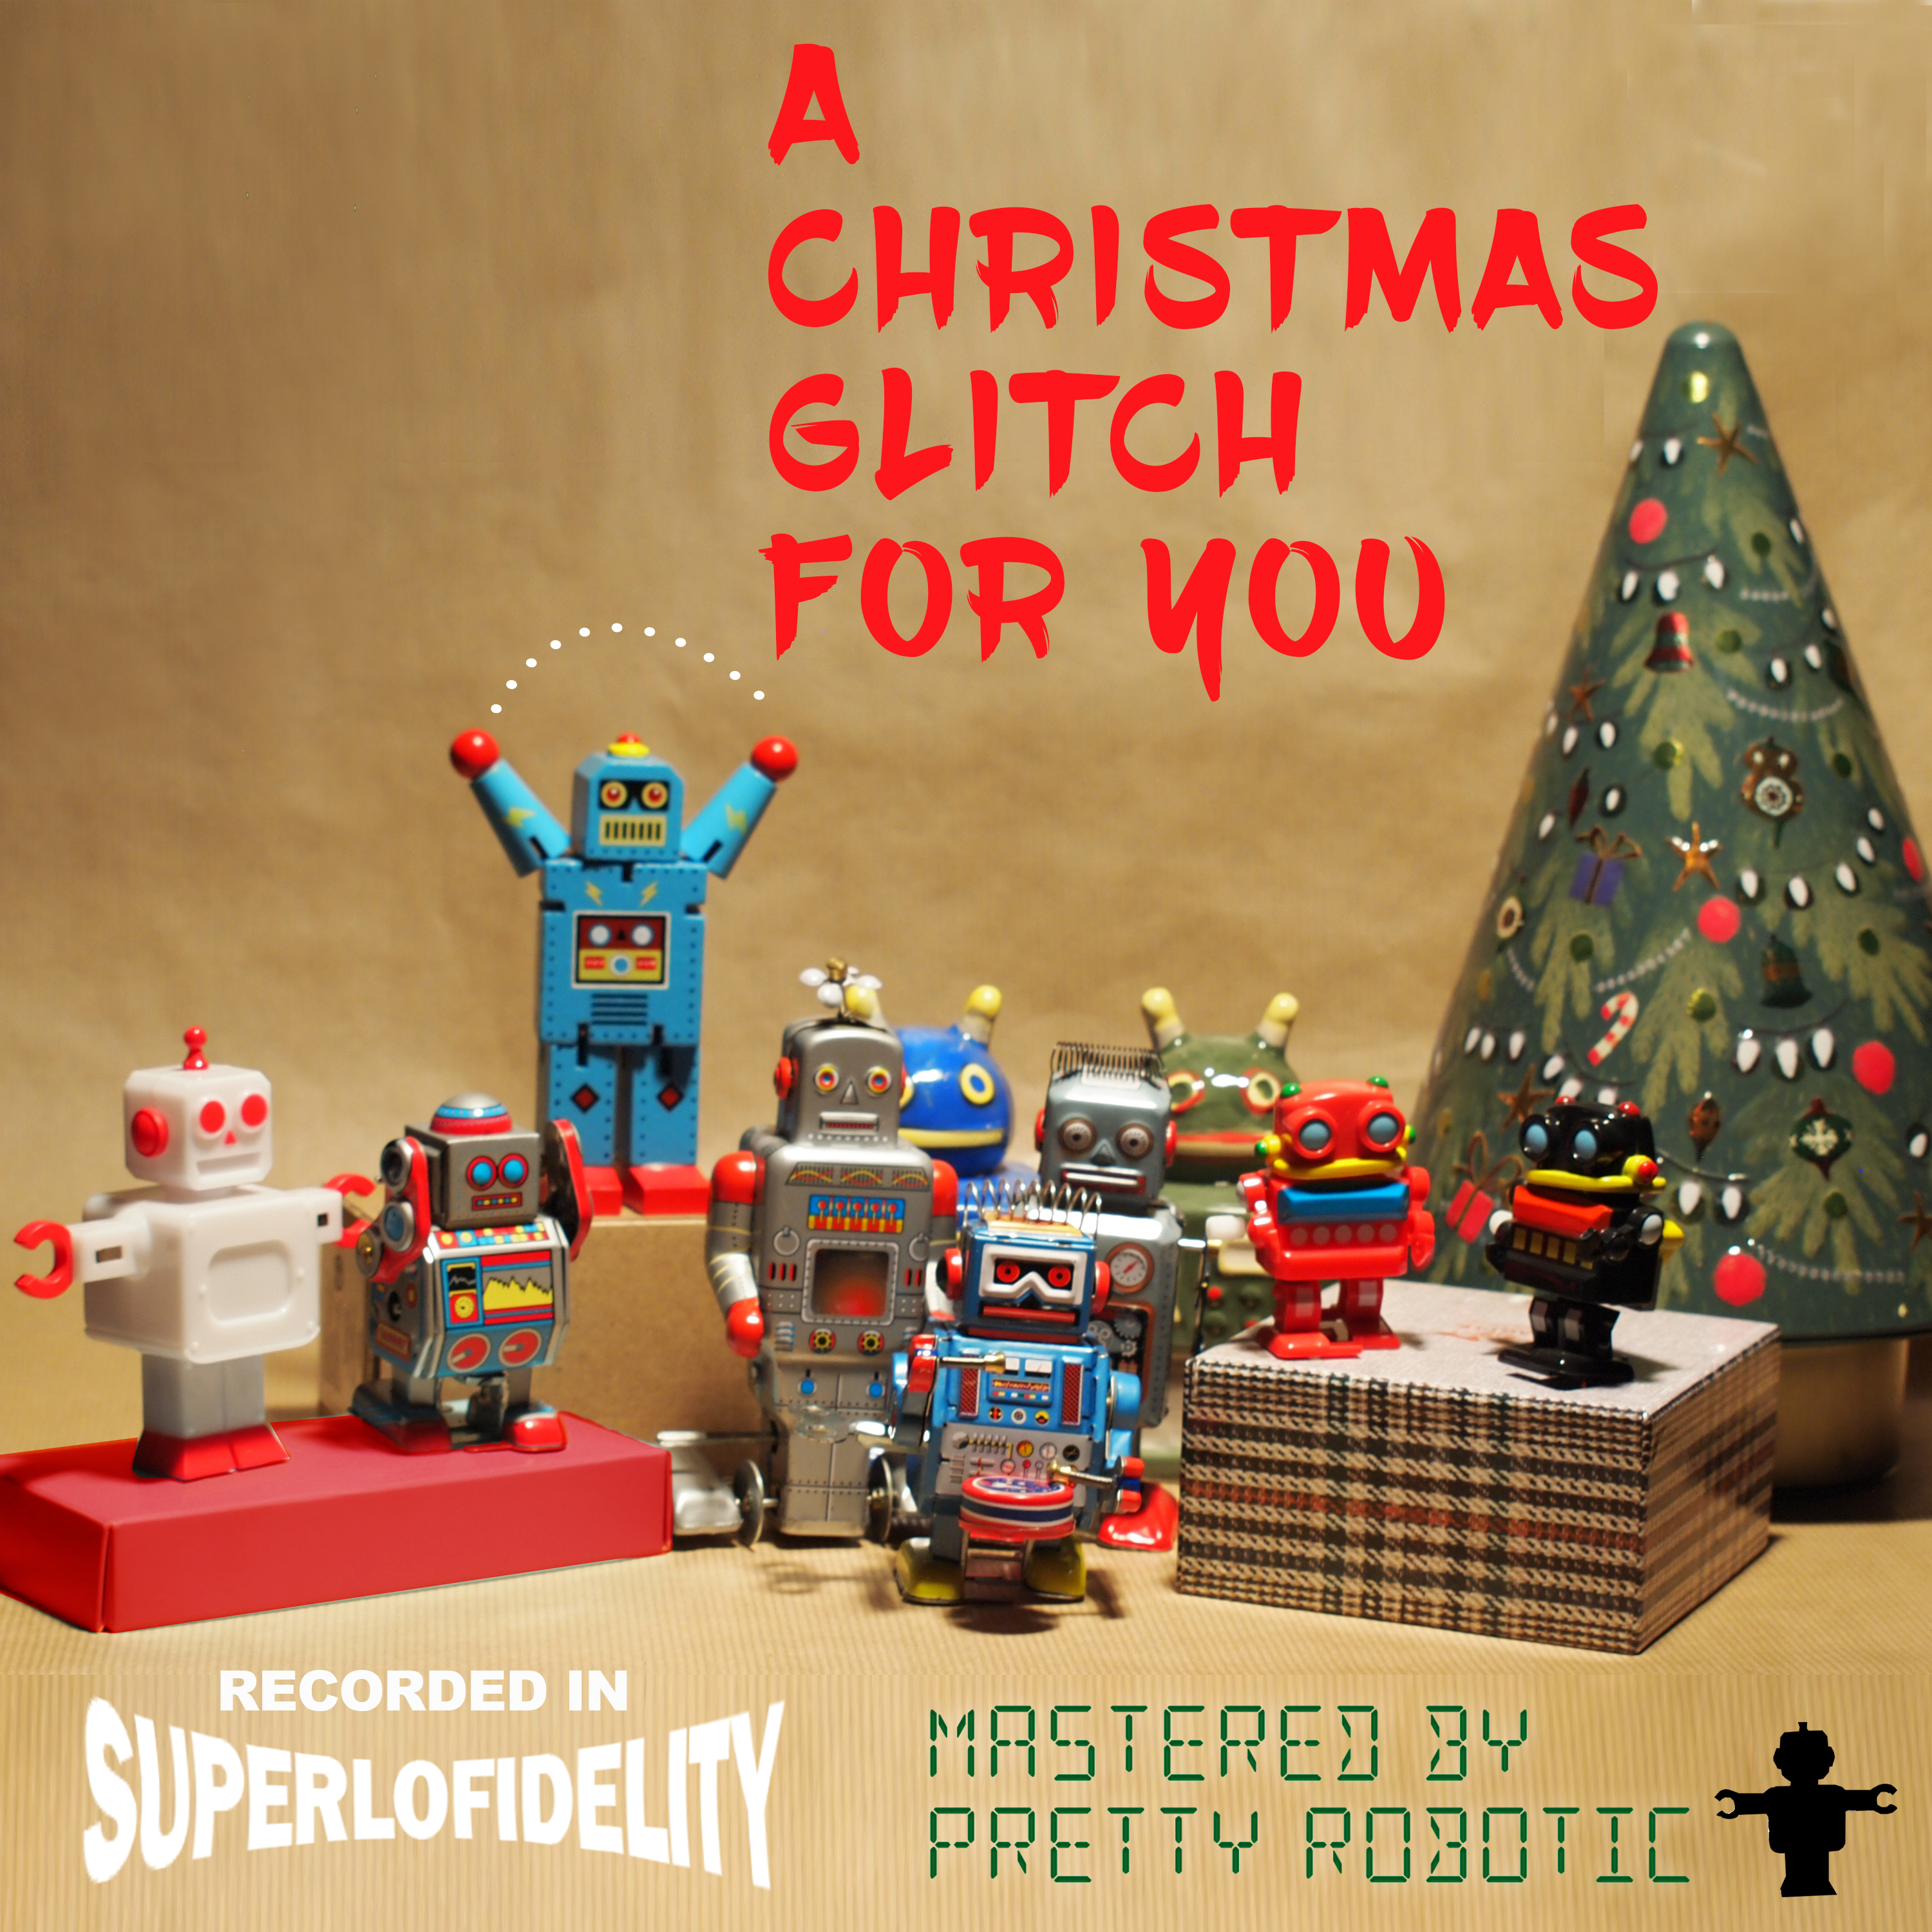 A Christmas Glitch for You